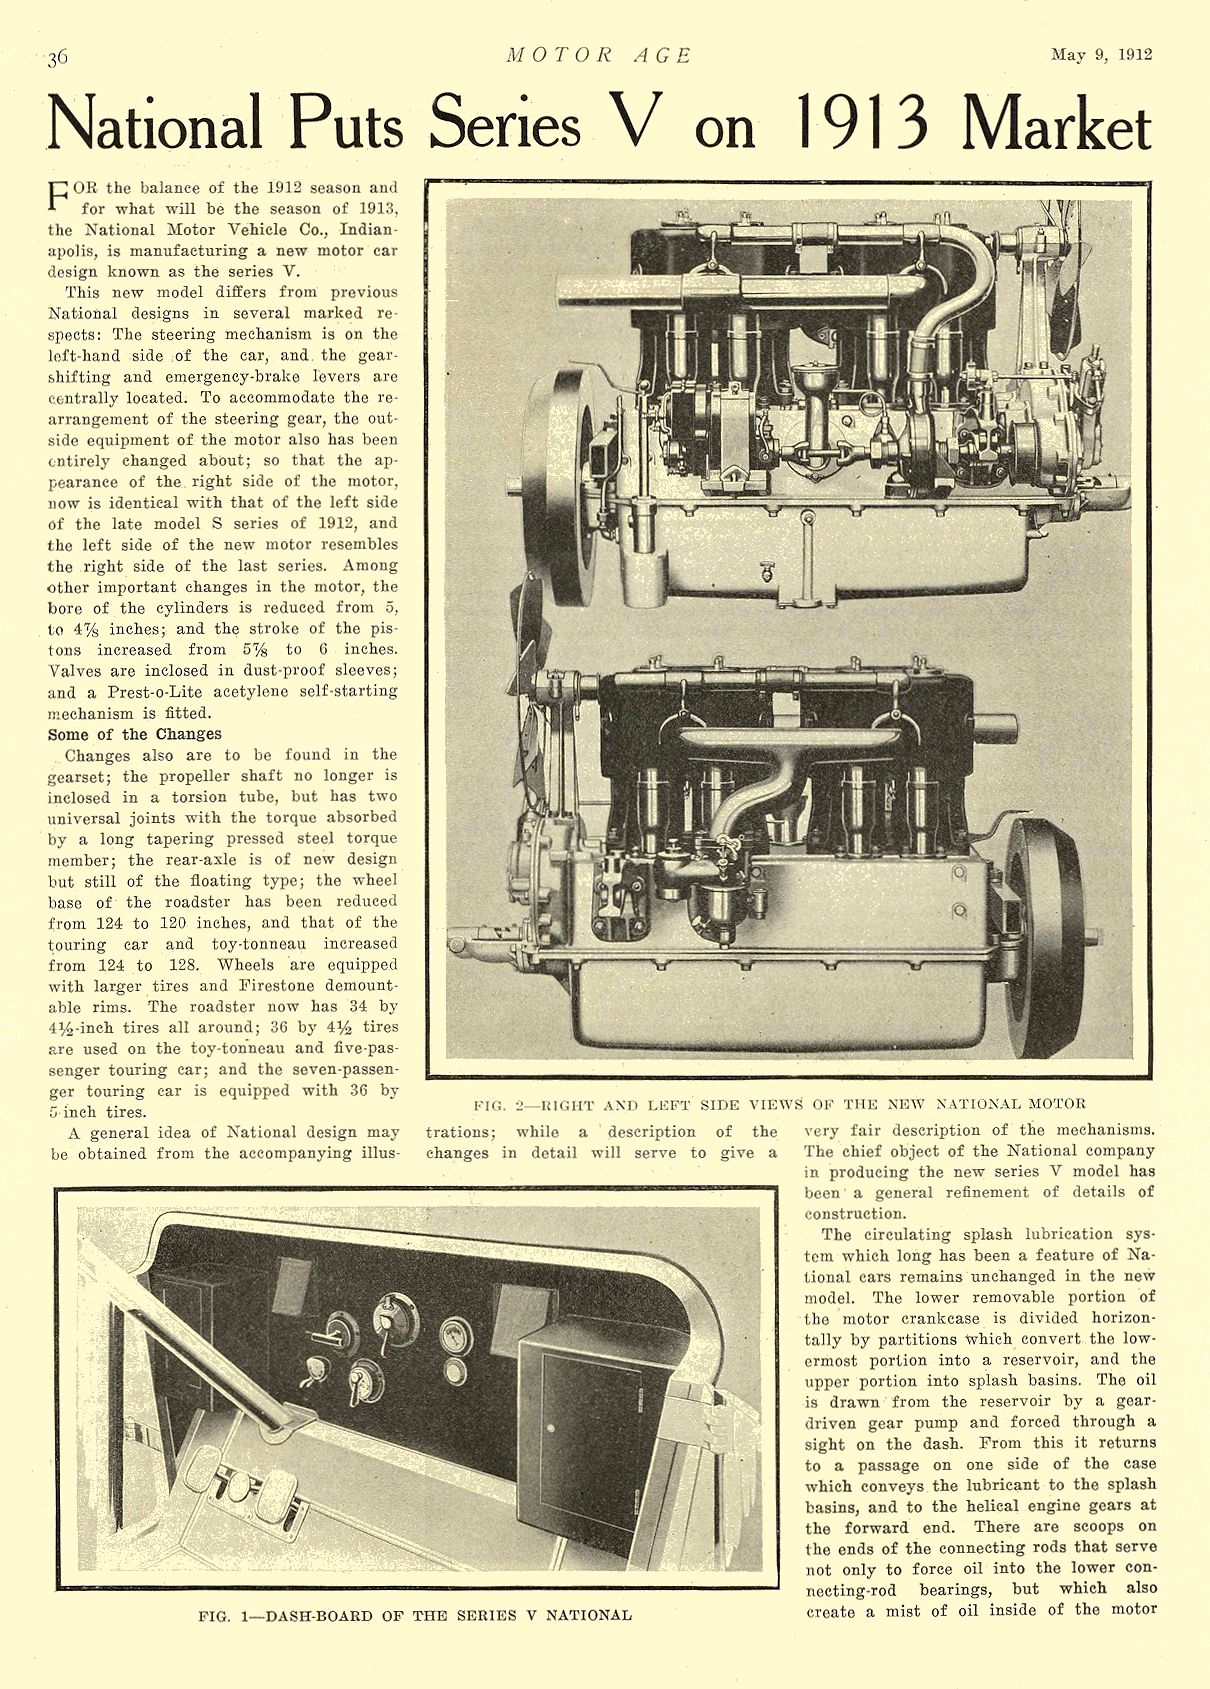 1912 5 9 NATIONAL Article National Puts Series V on 1913 Market National Motor Vehicle Co. Indianapolis, IND MOTOR AGE May 9, 1912 8.5″x12″ page 36